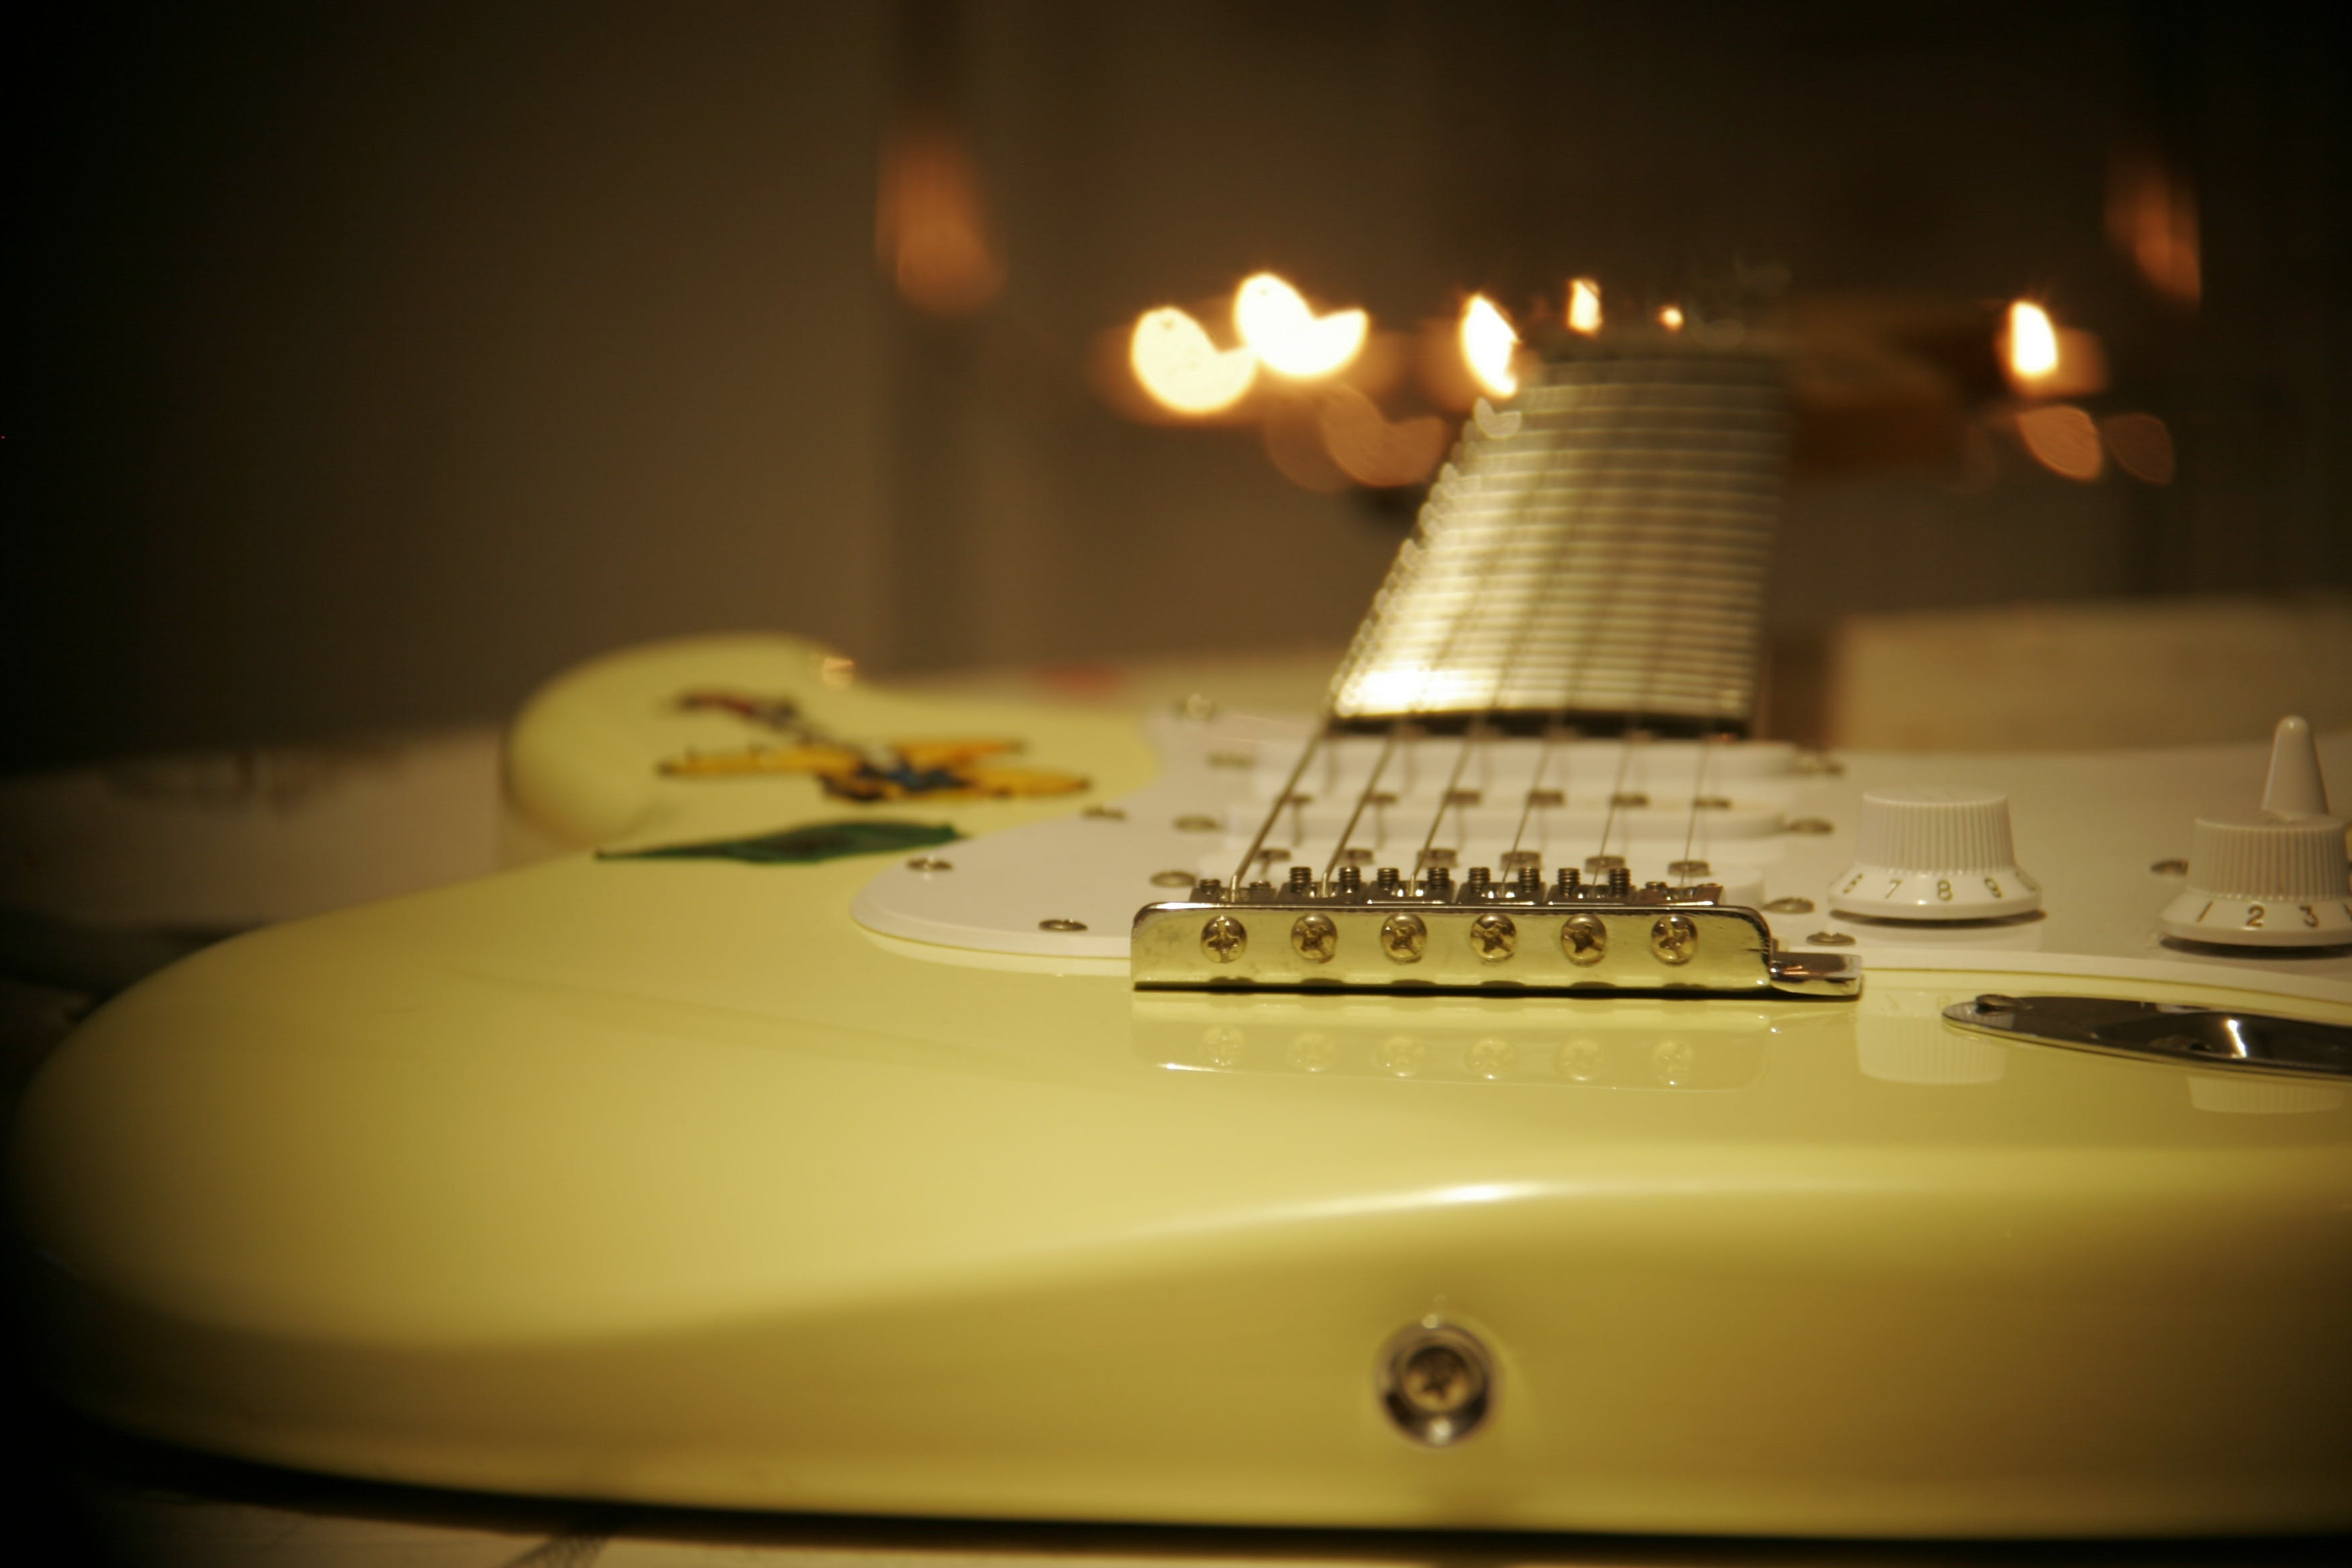 Yellow and White Stratocaster Electric Guitar